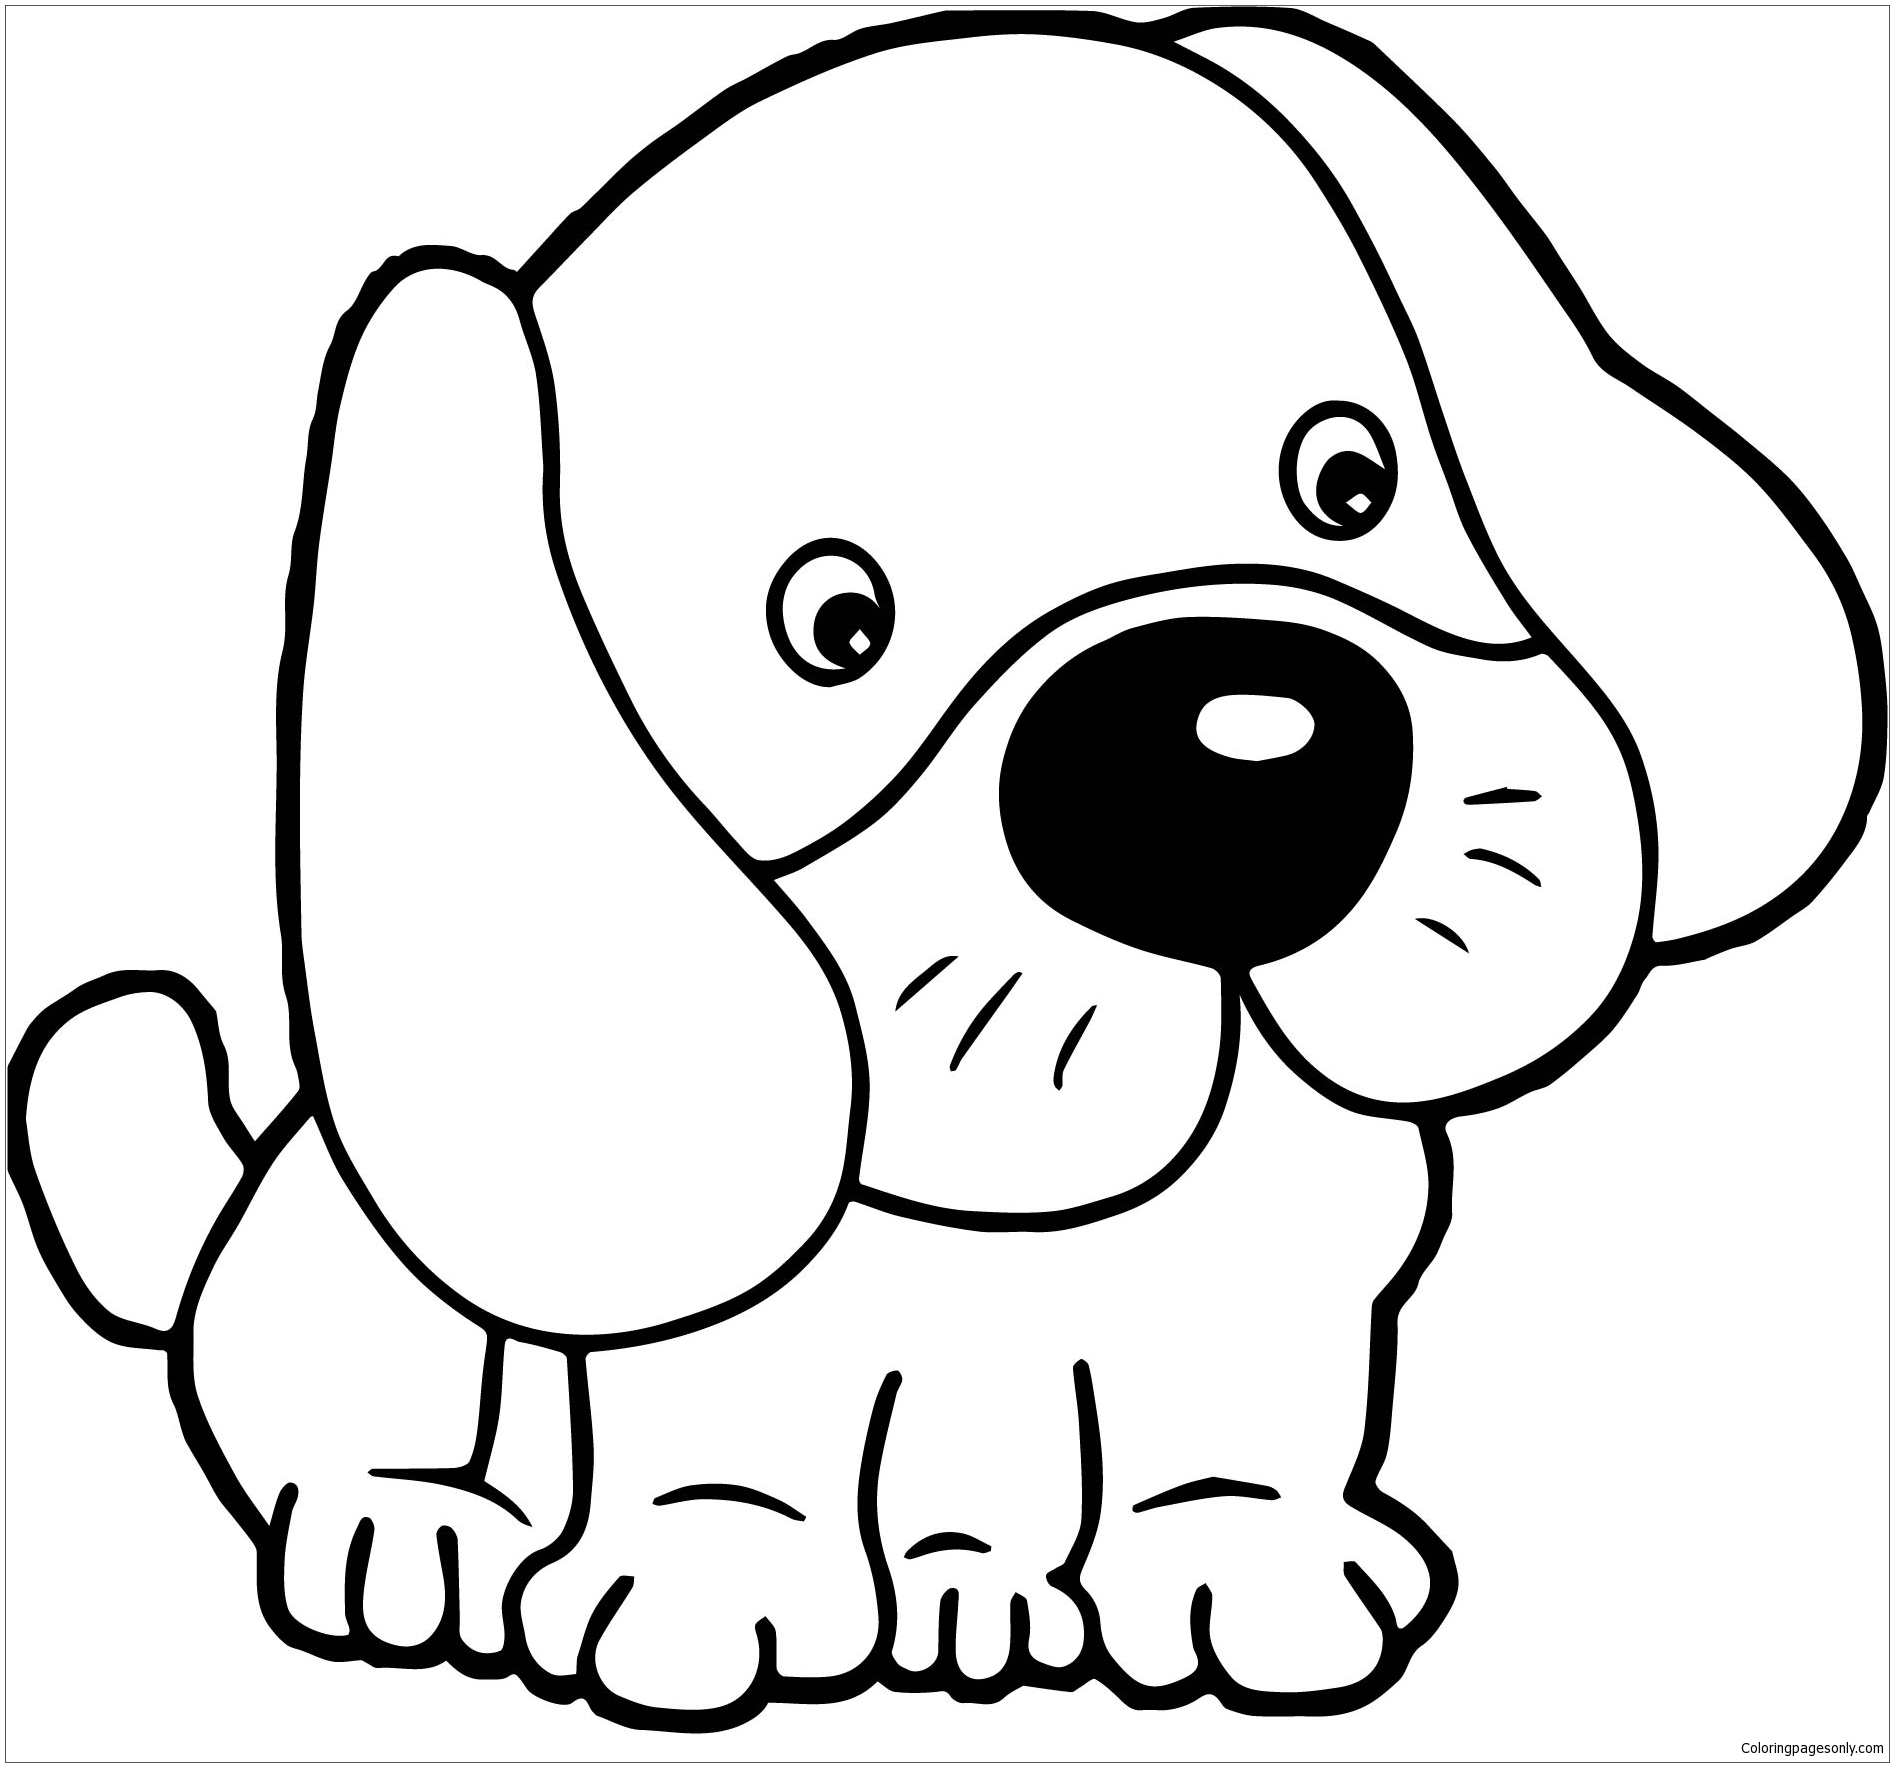 Puppy Dogs Cute Coloring Page - Free Coloring Pages Online